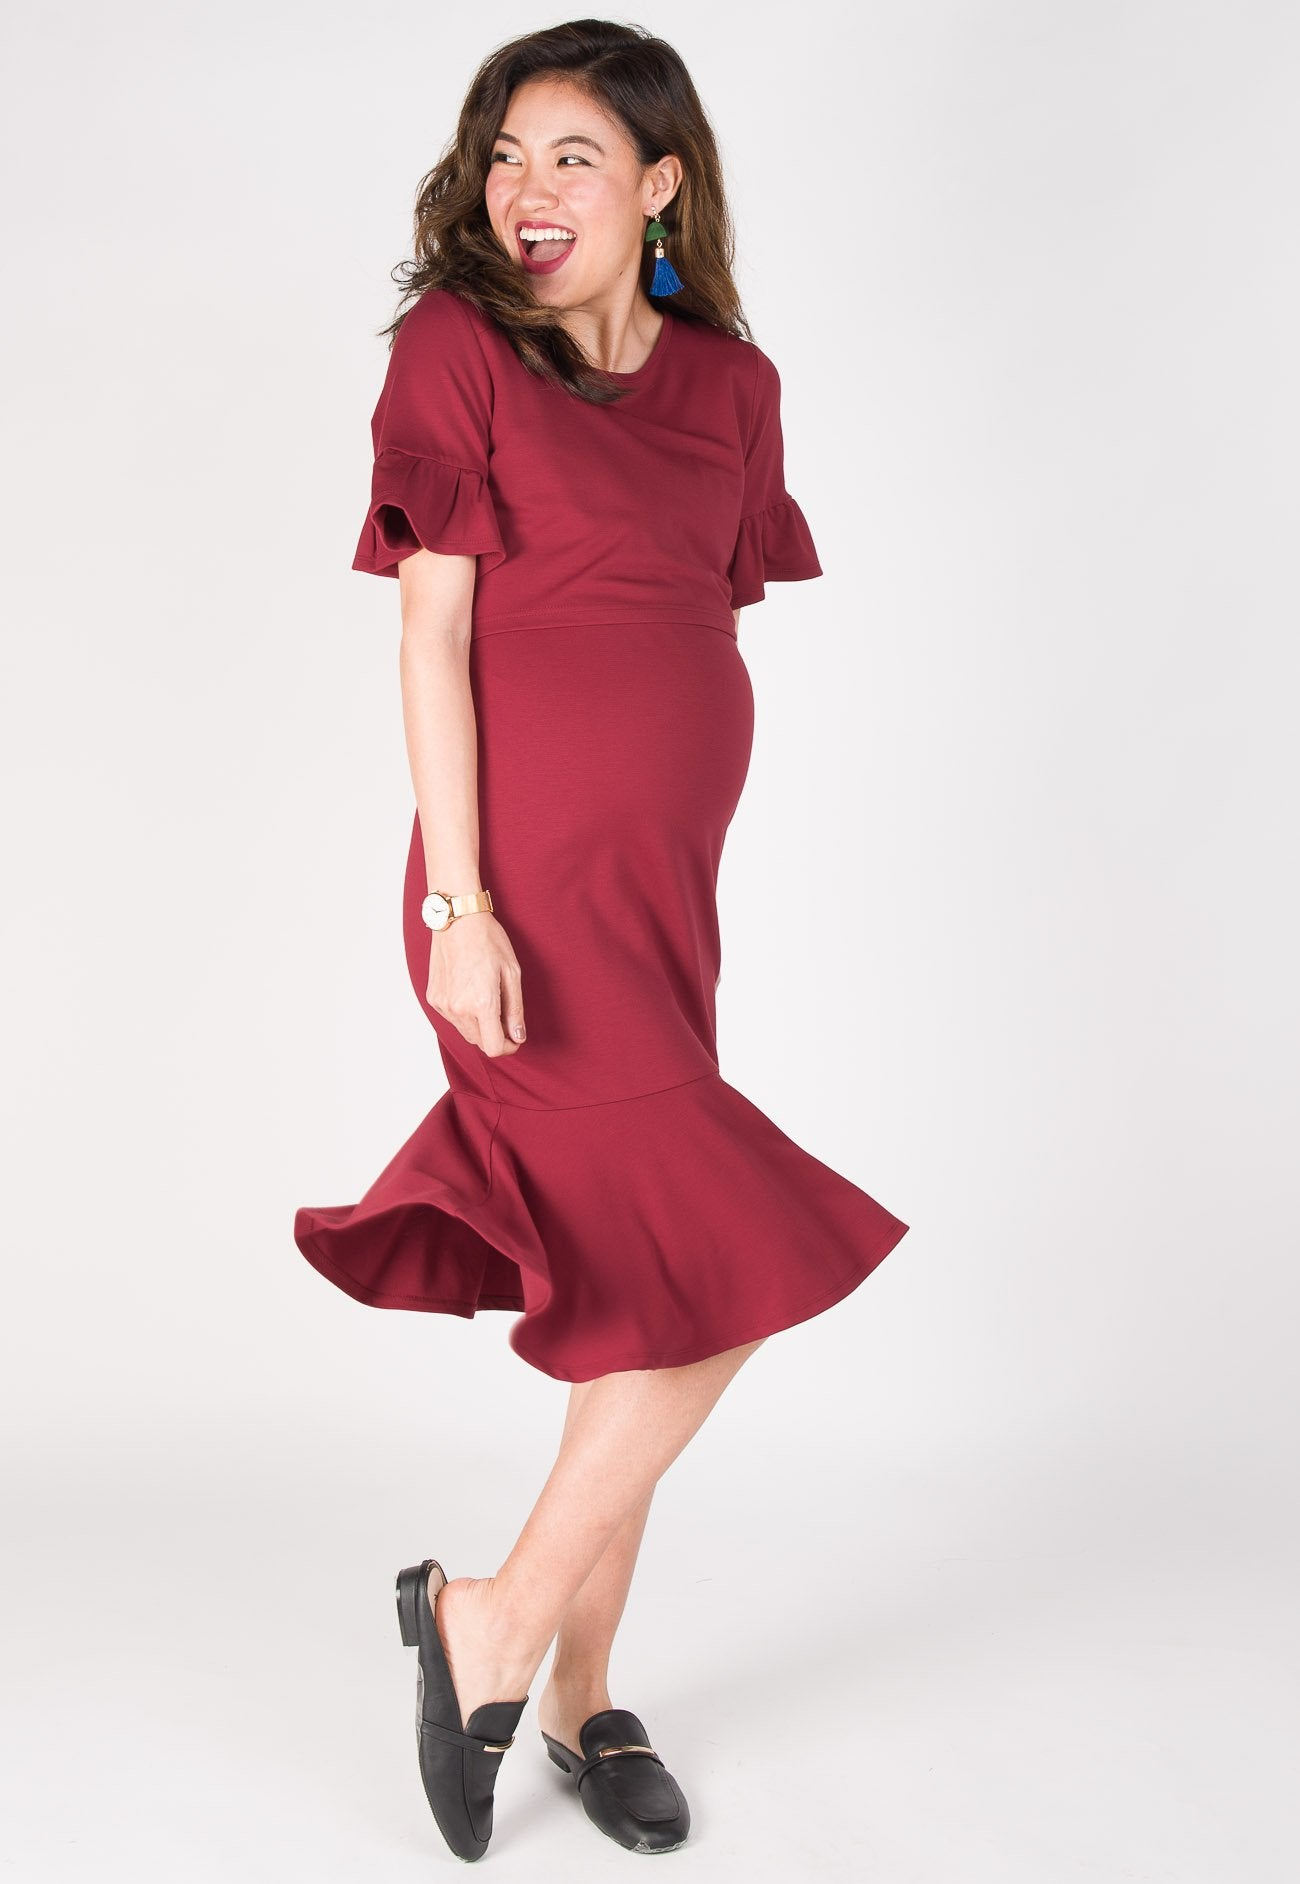 035f01ff814 ... Ruffle Peplum Nursing Dress in Red by Jump Eat Cry - Maternity and nursing  wear ...